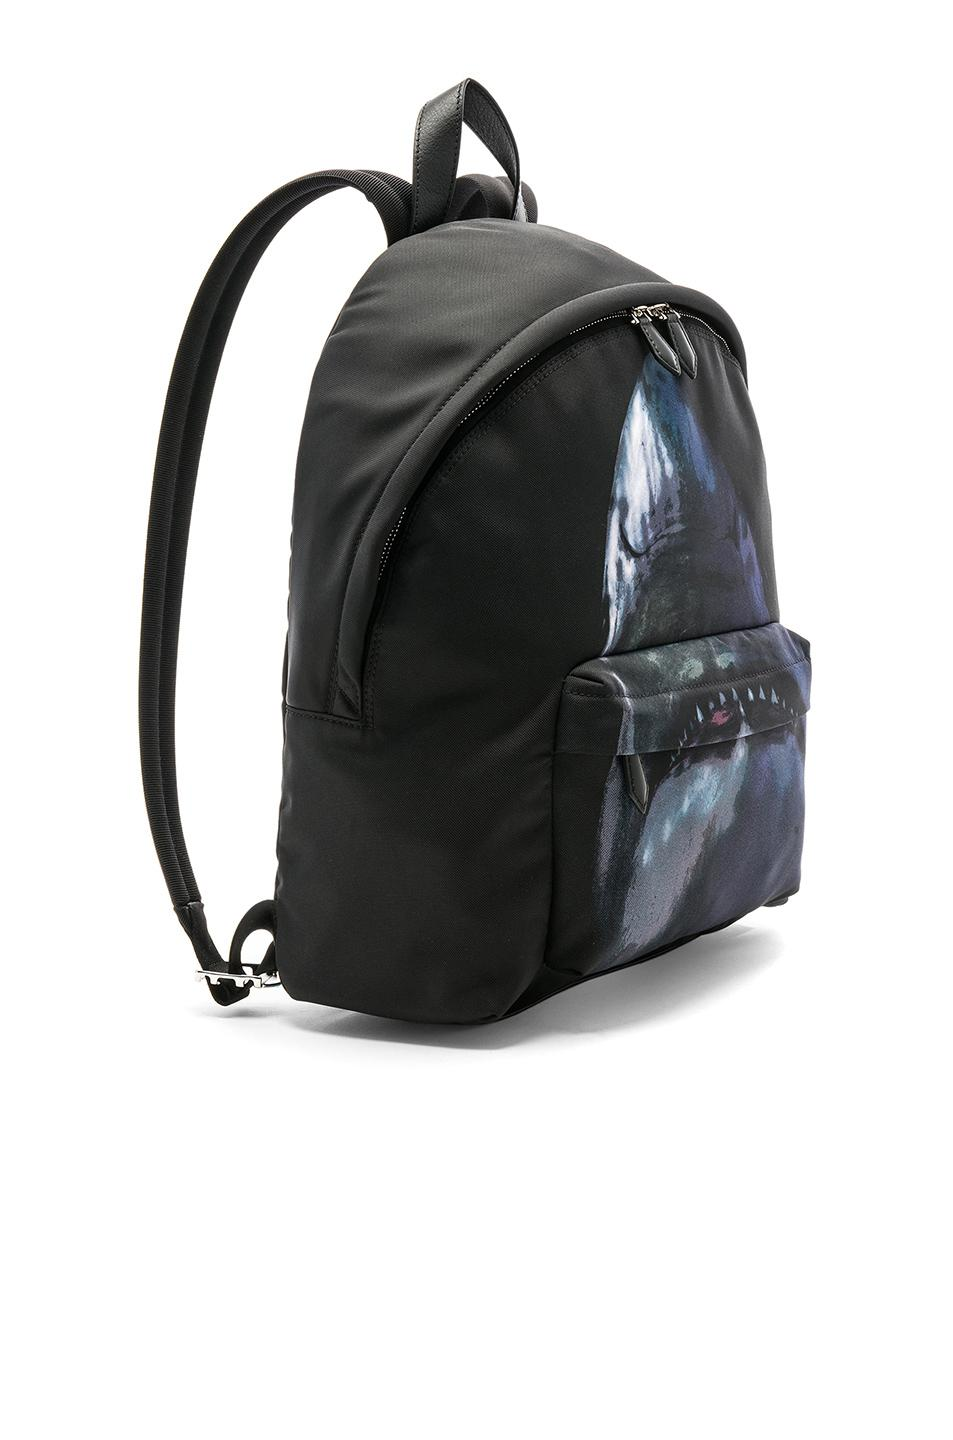 Largest Supplier Cheap Online Buy Cheap Low Price Givenchy Flat Pocket Shark Backpack in Multicolor Buy Cheap Store Outlet Prices Free Shipping Clearance 98glX